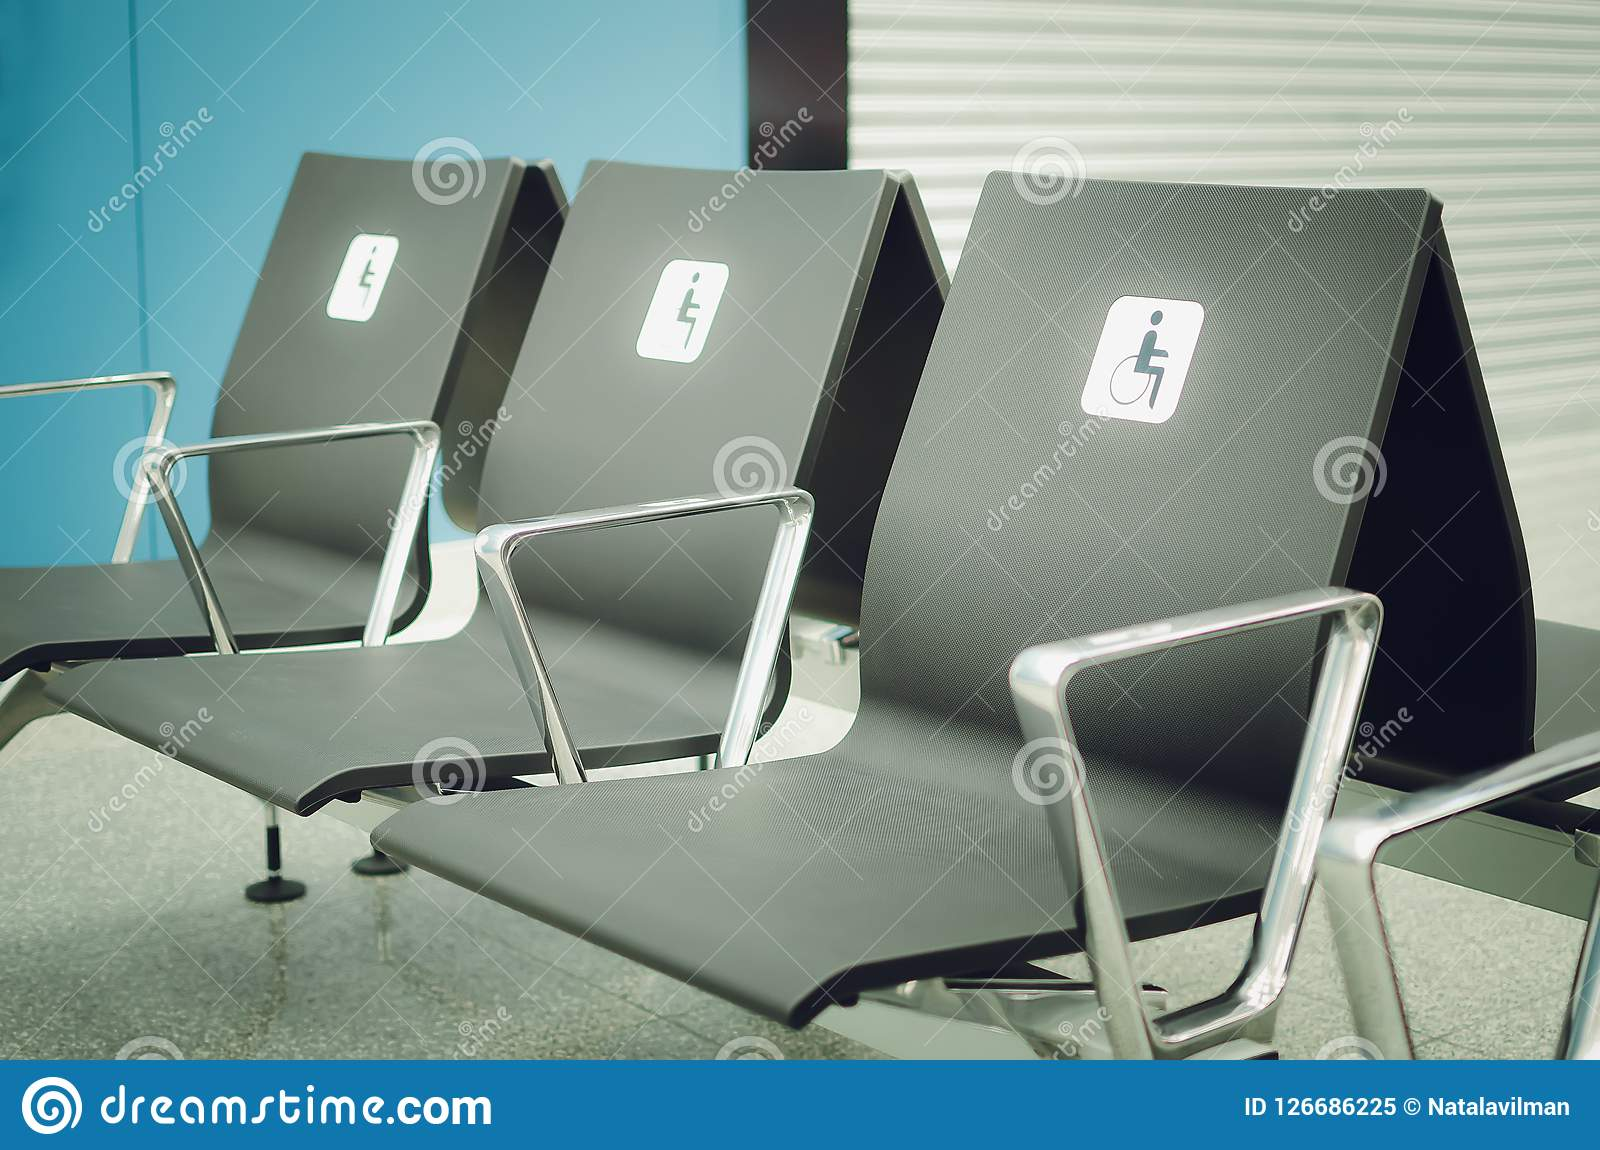 Empty Seats For Disabled People In The Waiting Room At The